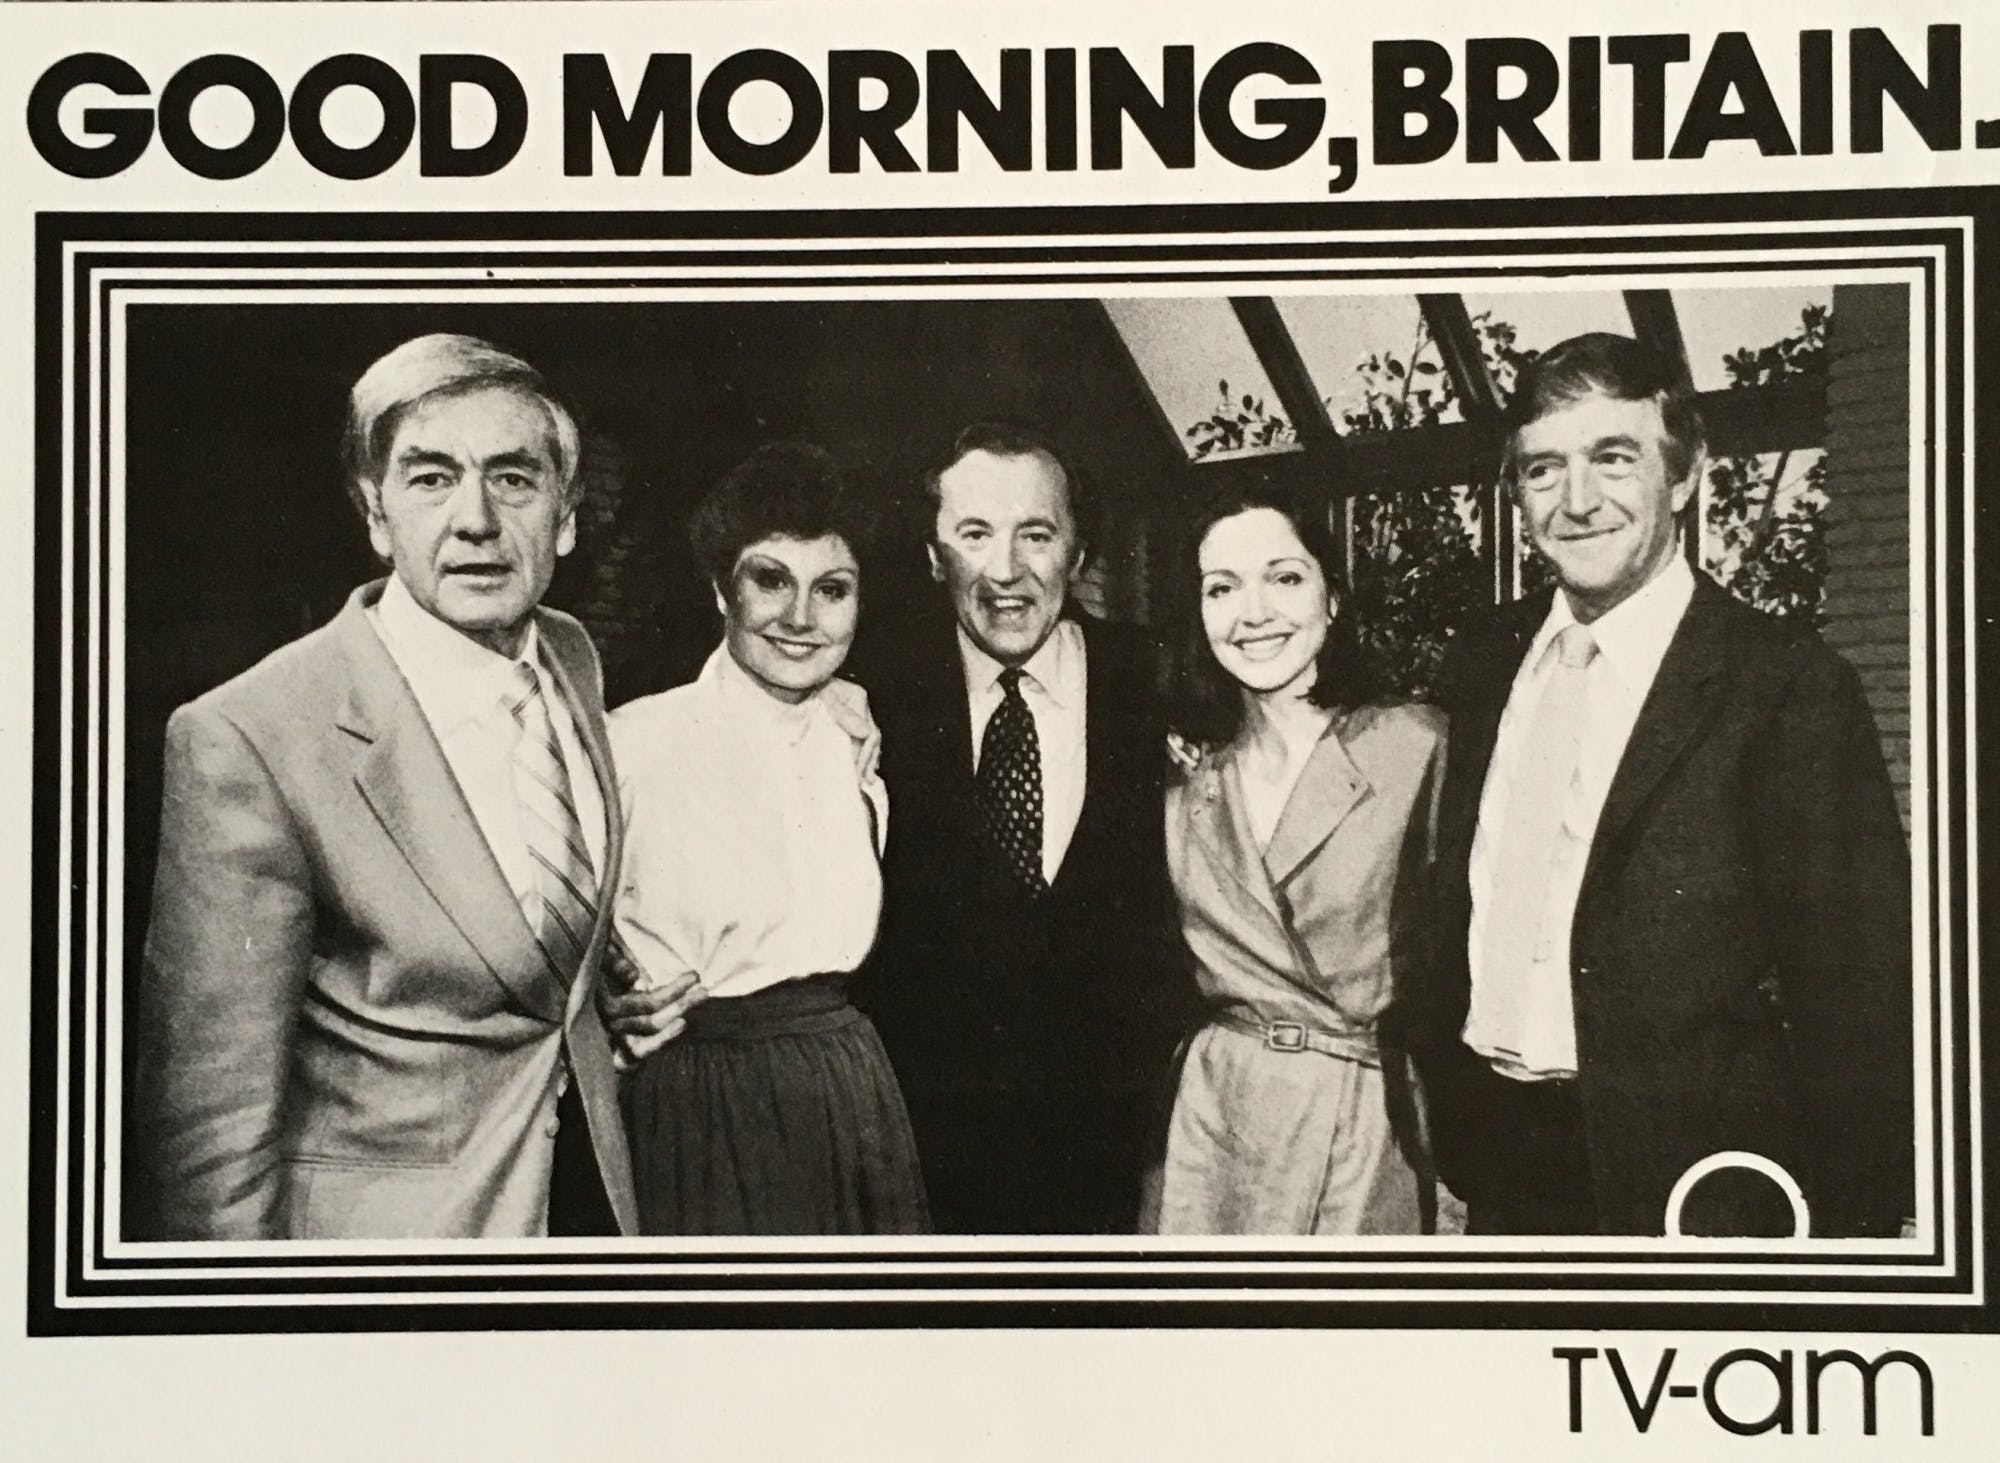 Famous Five presenters launch TV-am in 1983